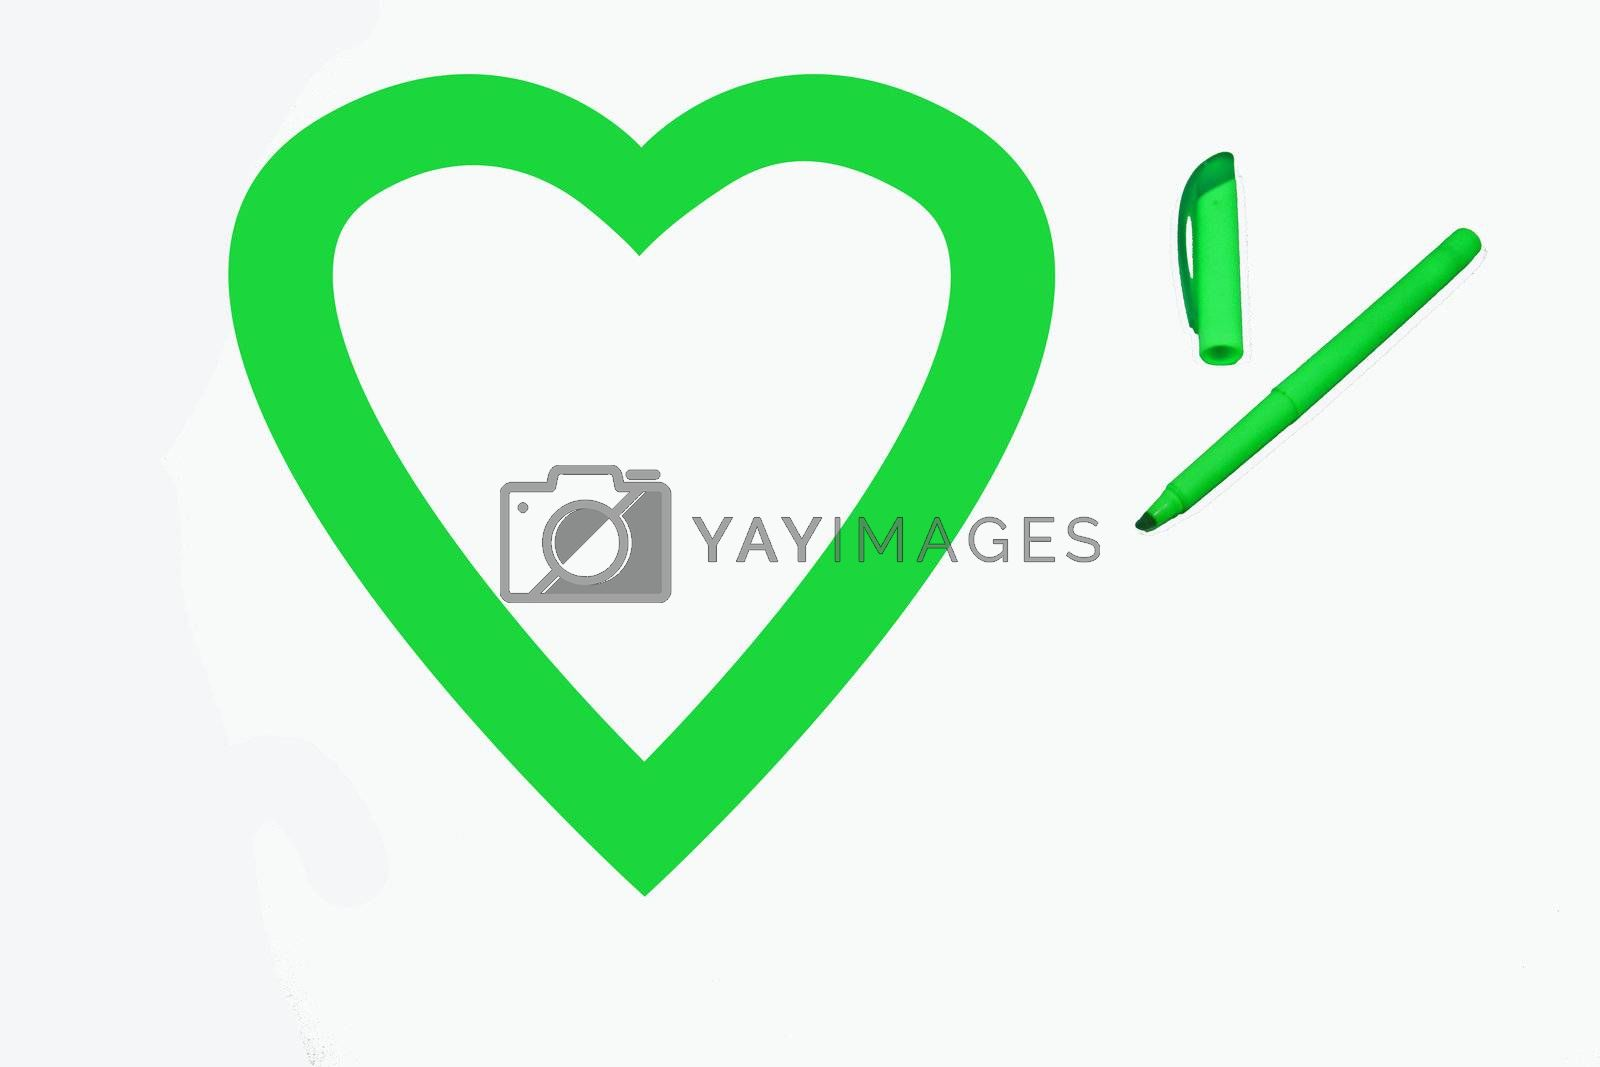 Heart shape colored green by office highlighter on white background